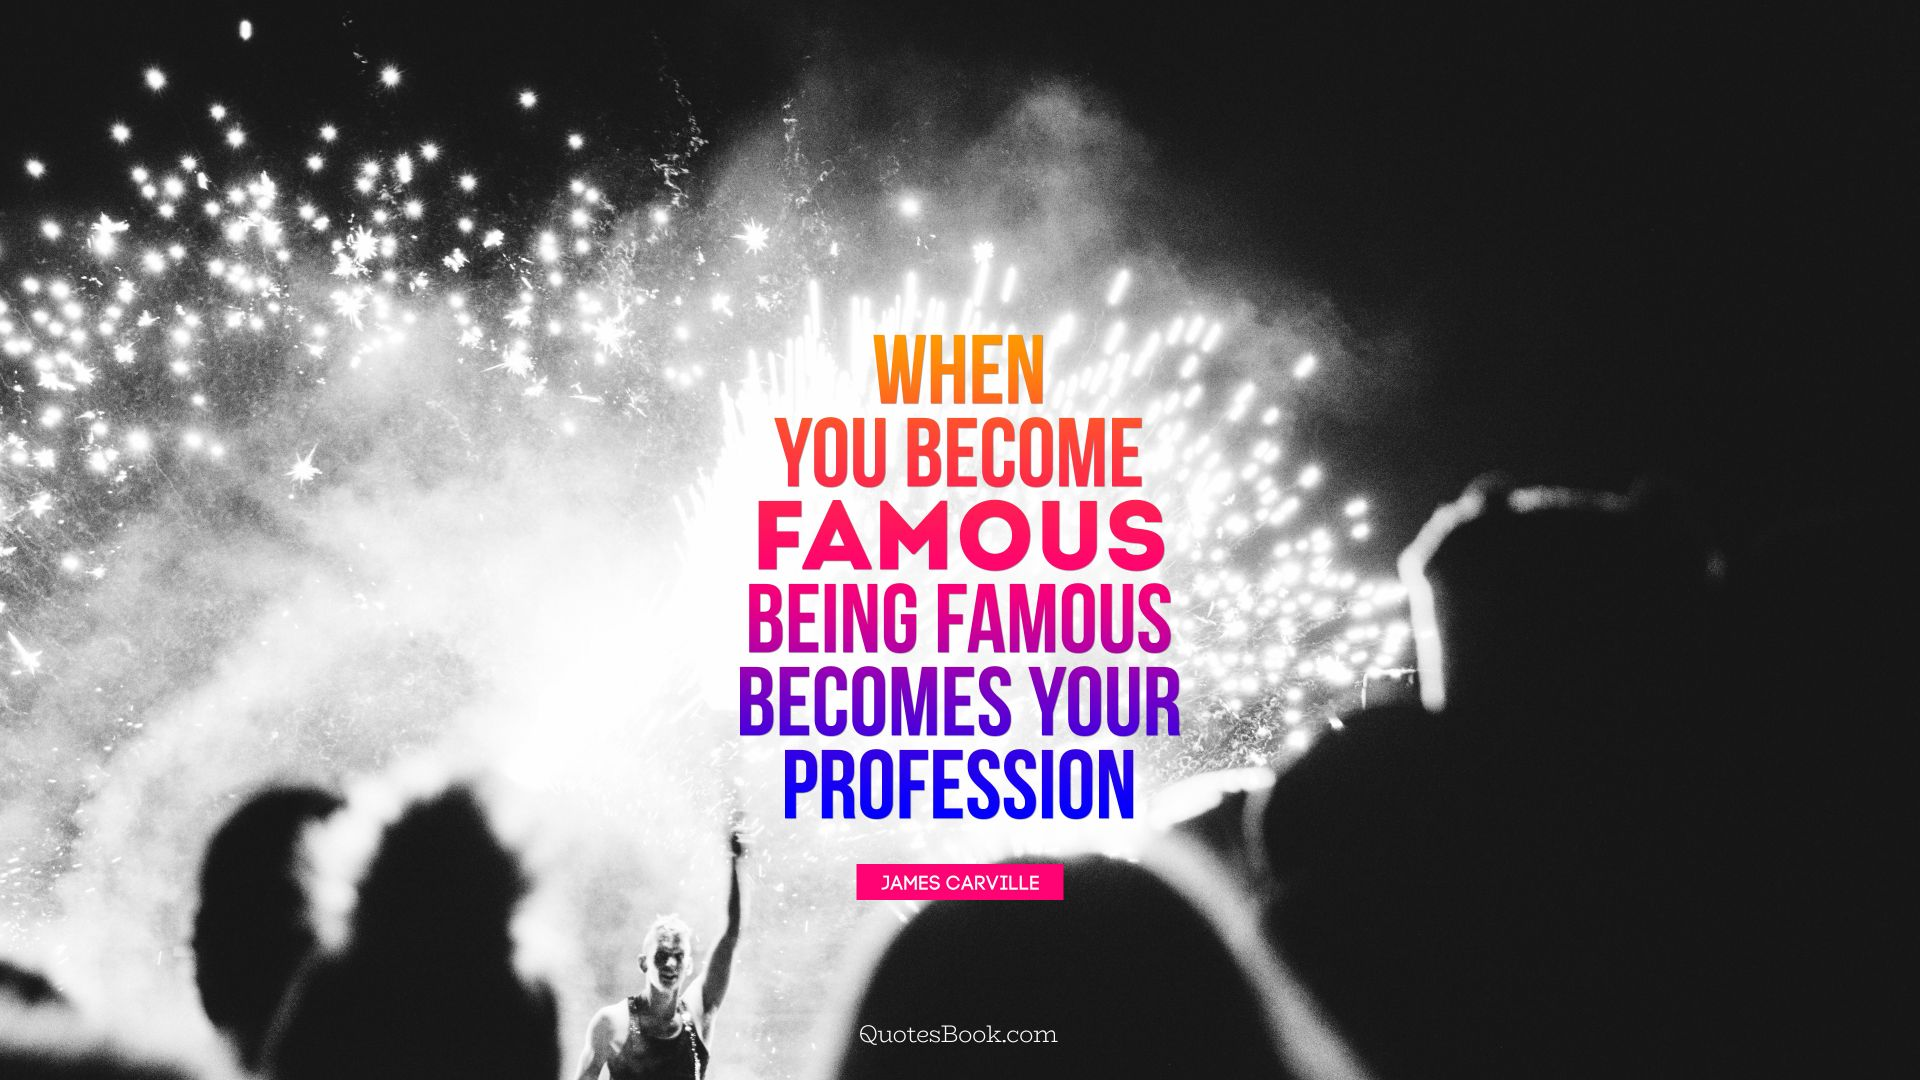 When you become famous, being famous becomes your profession. - Quote by James Carville